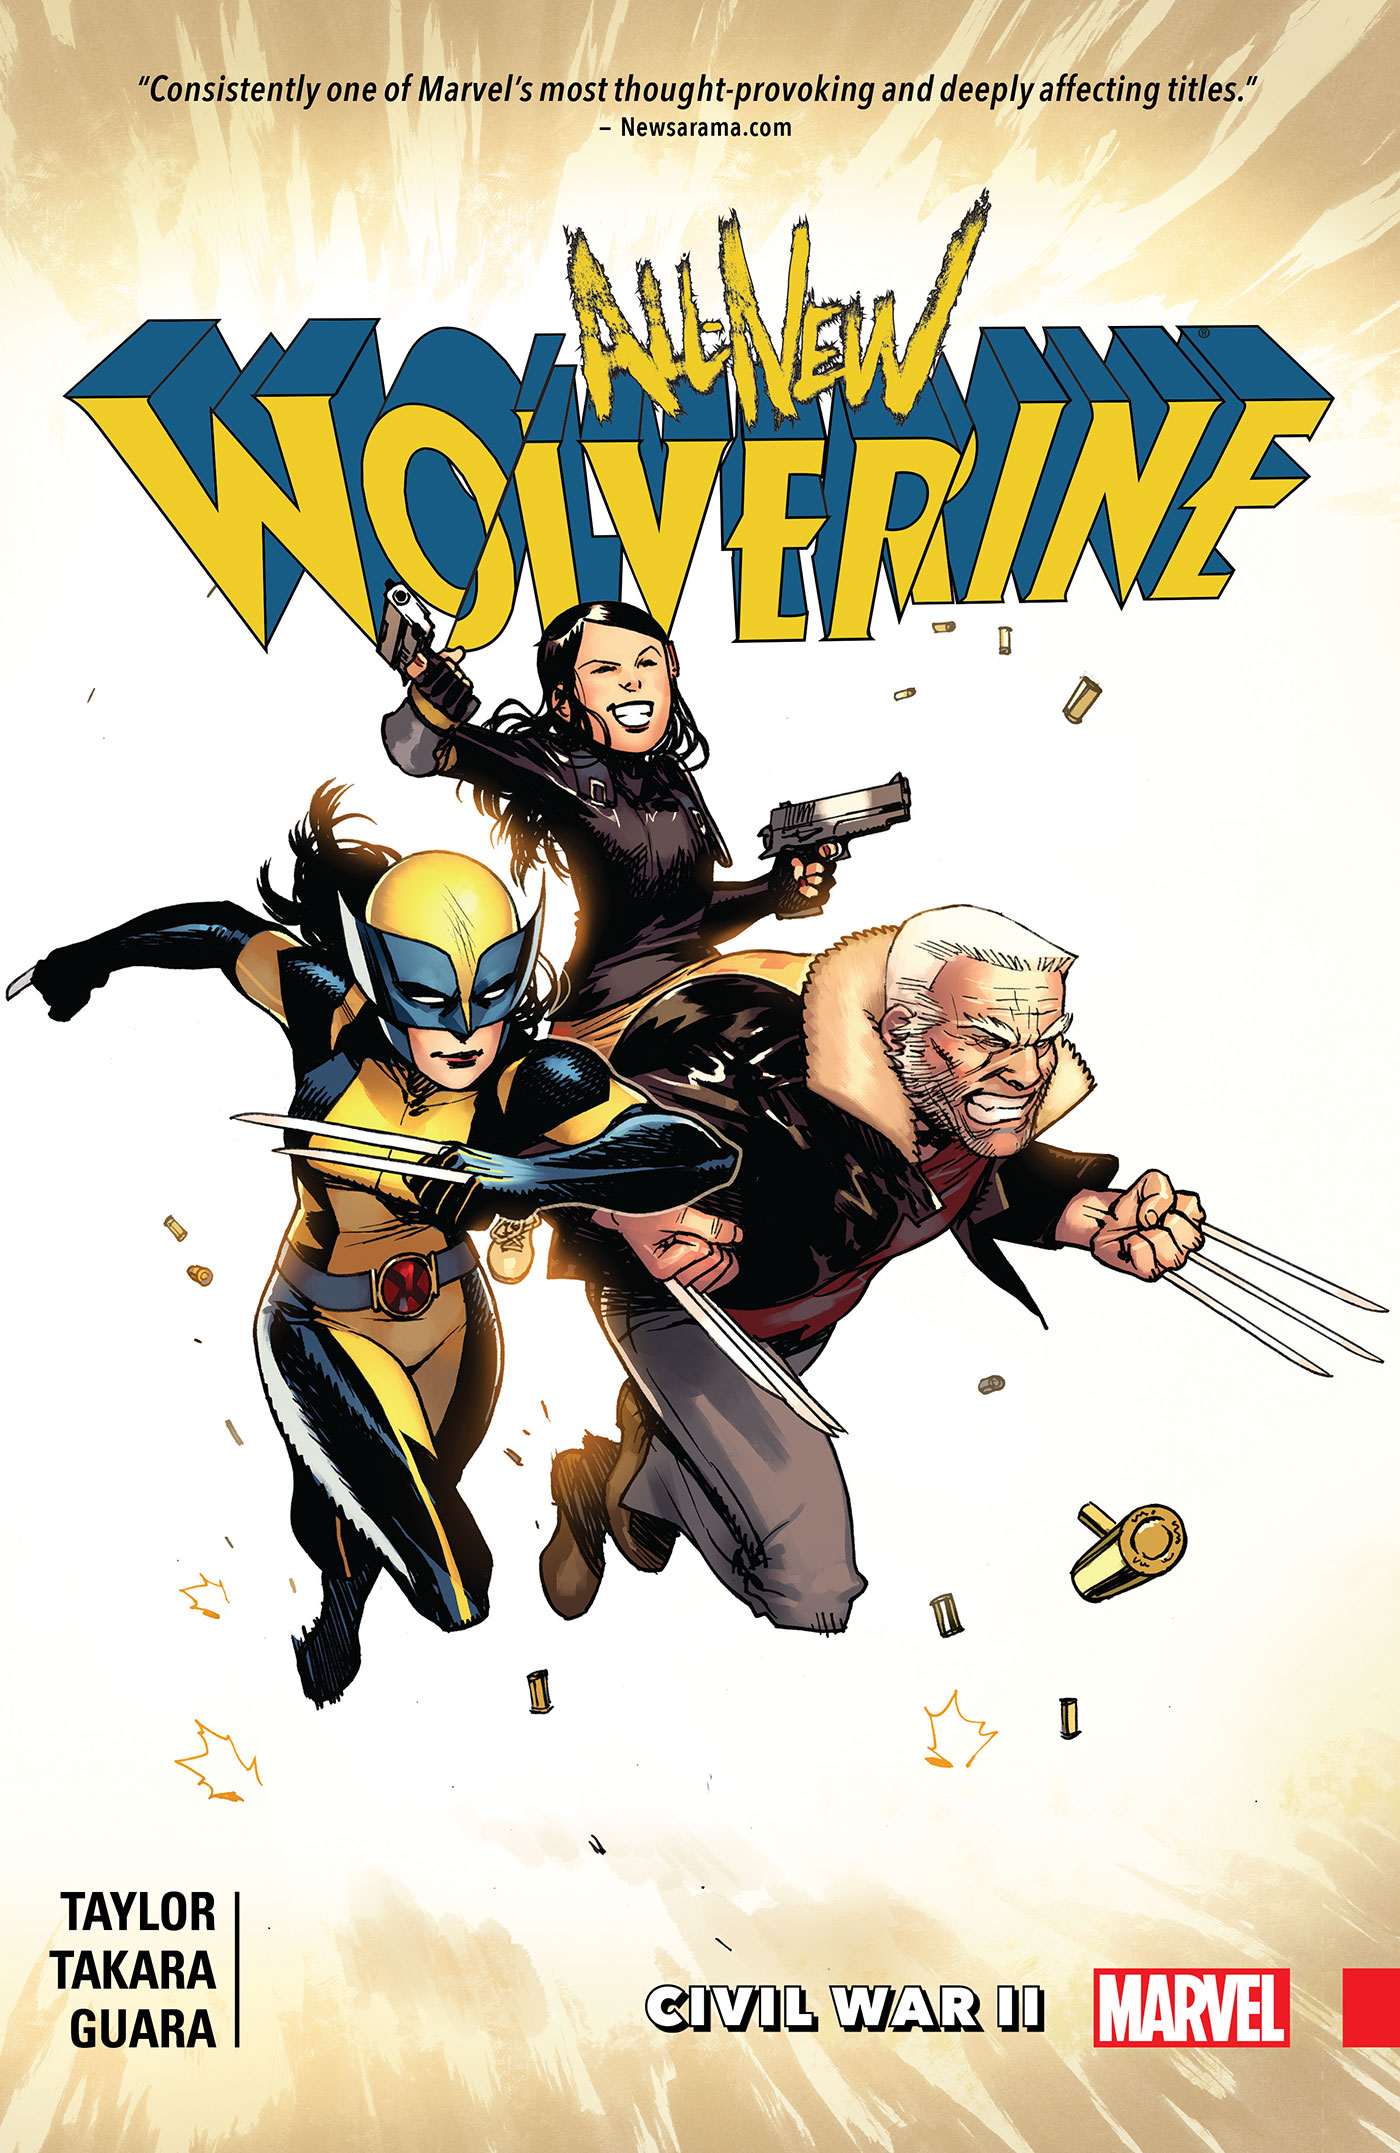 All-New Wolverine Vol. 2: Civil War Ii [electronic resource]